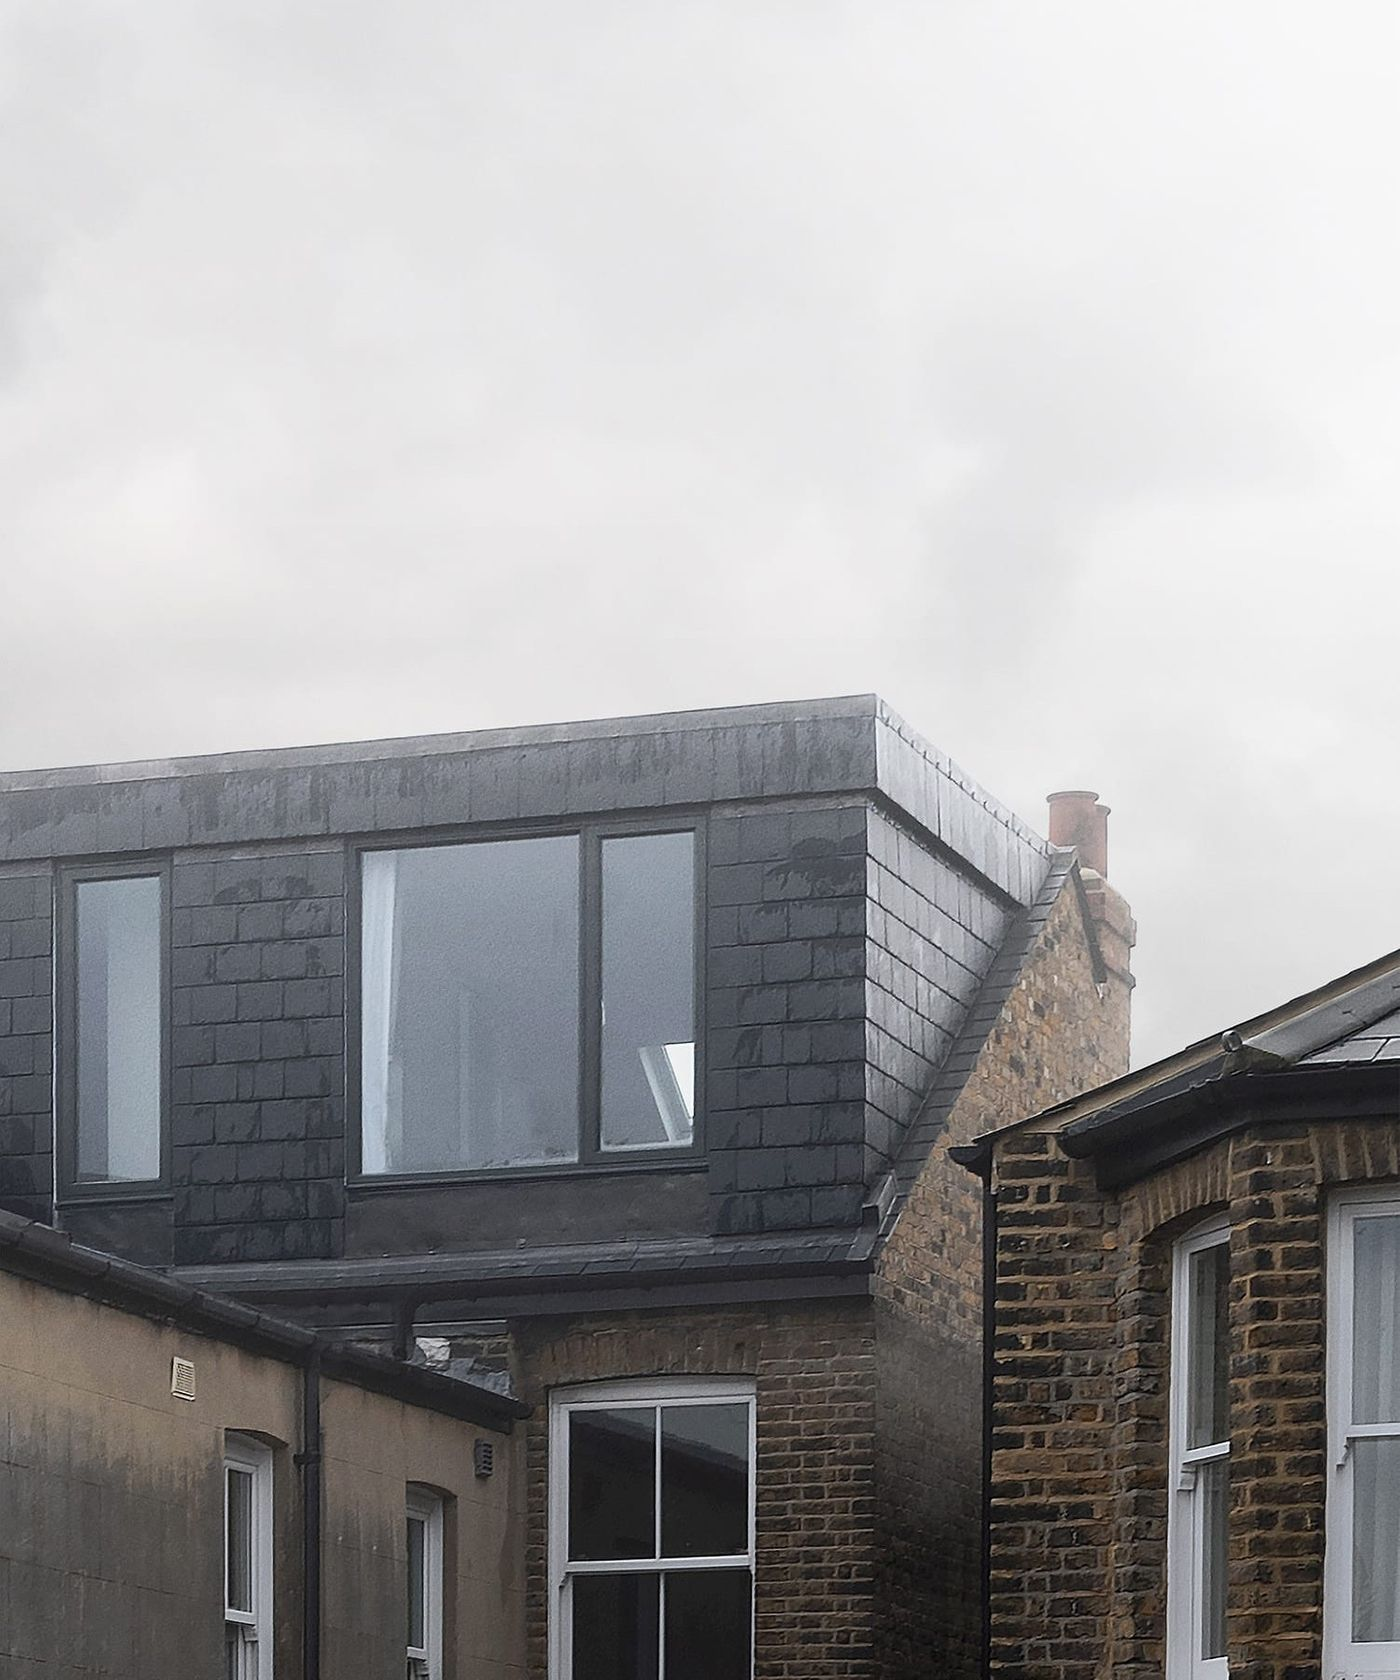 External view of the slate and lead clad new rear dormer extension at Northbrook Road designed by From Works.